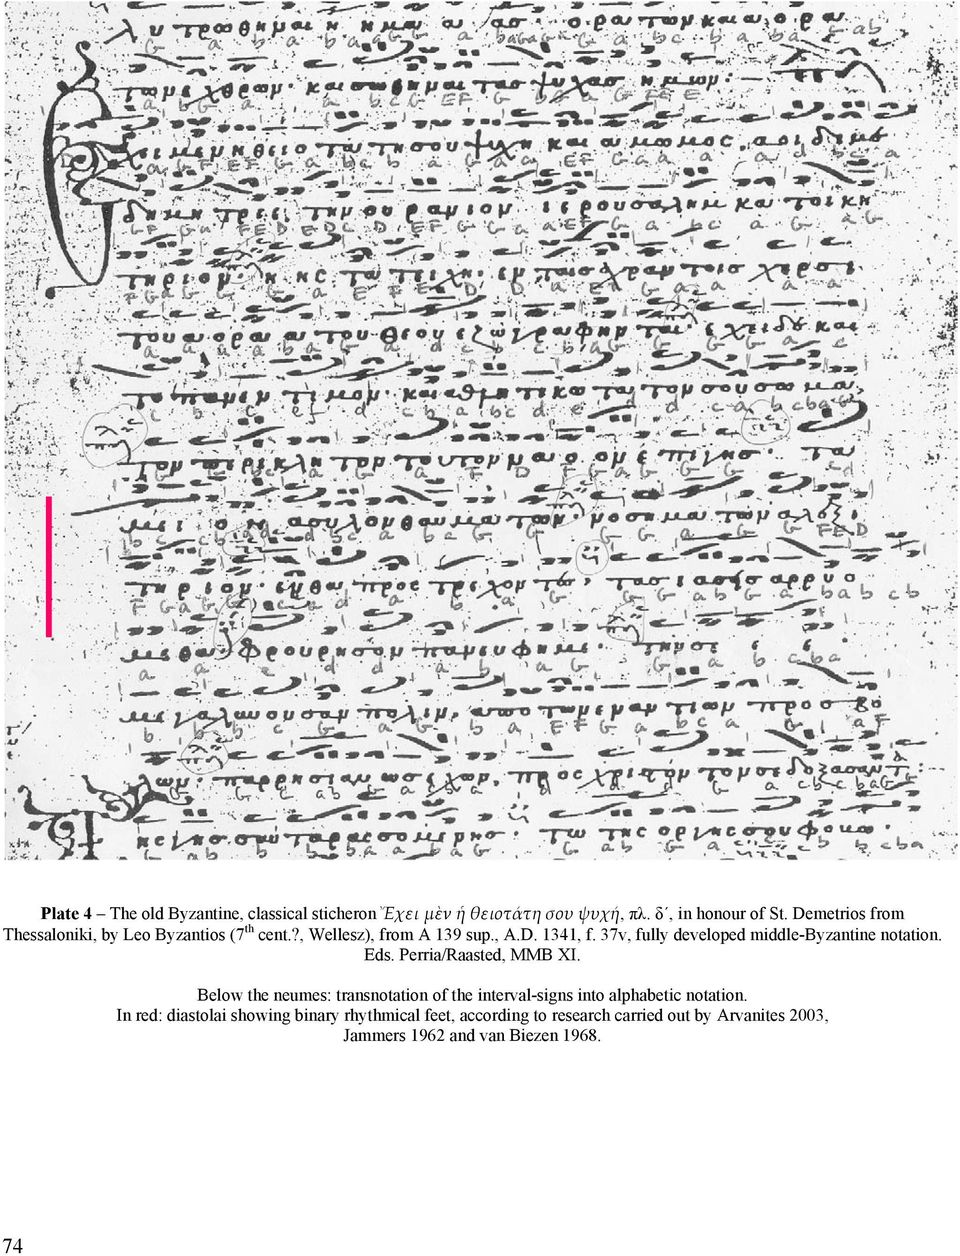 37v, fully developed middle-byzantine notation. Eds. Perria/Raasted, MMB XI.